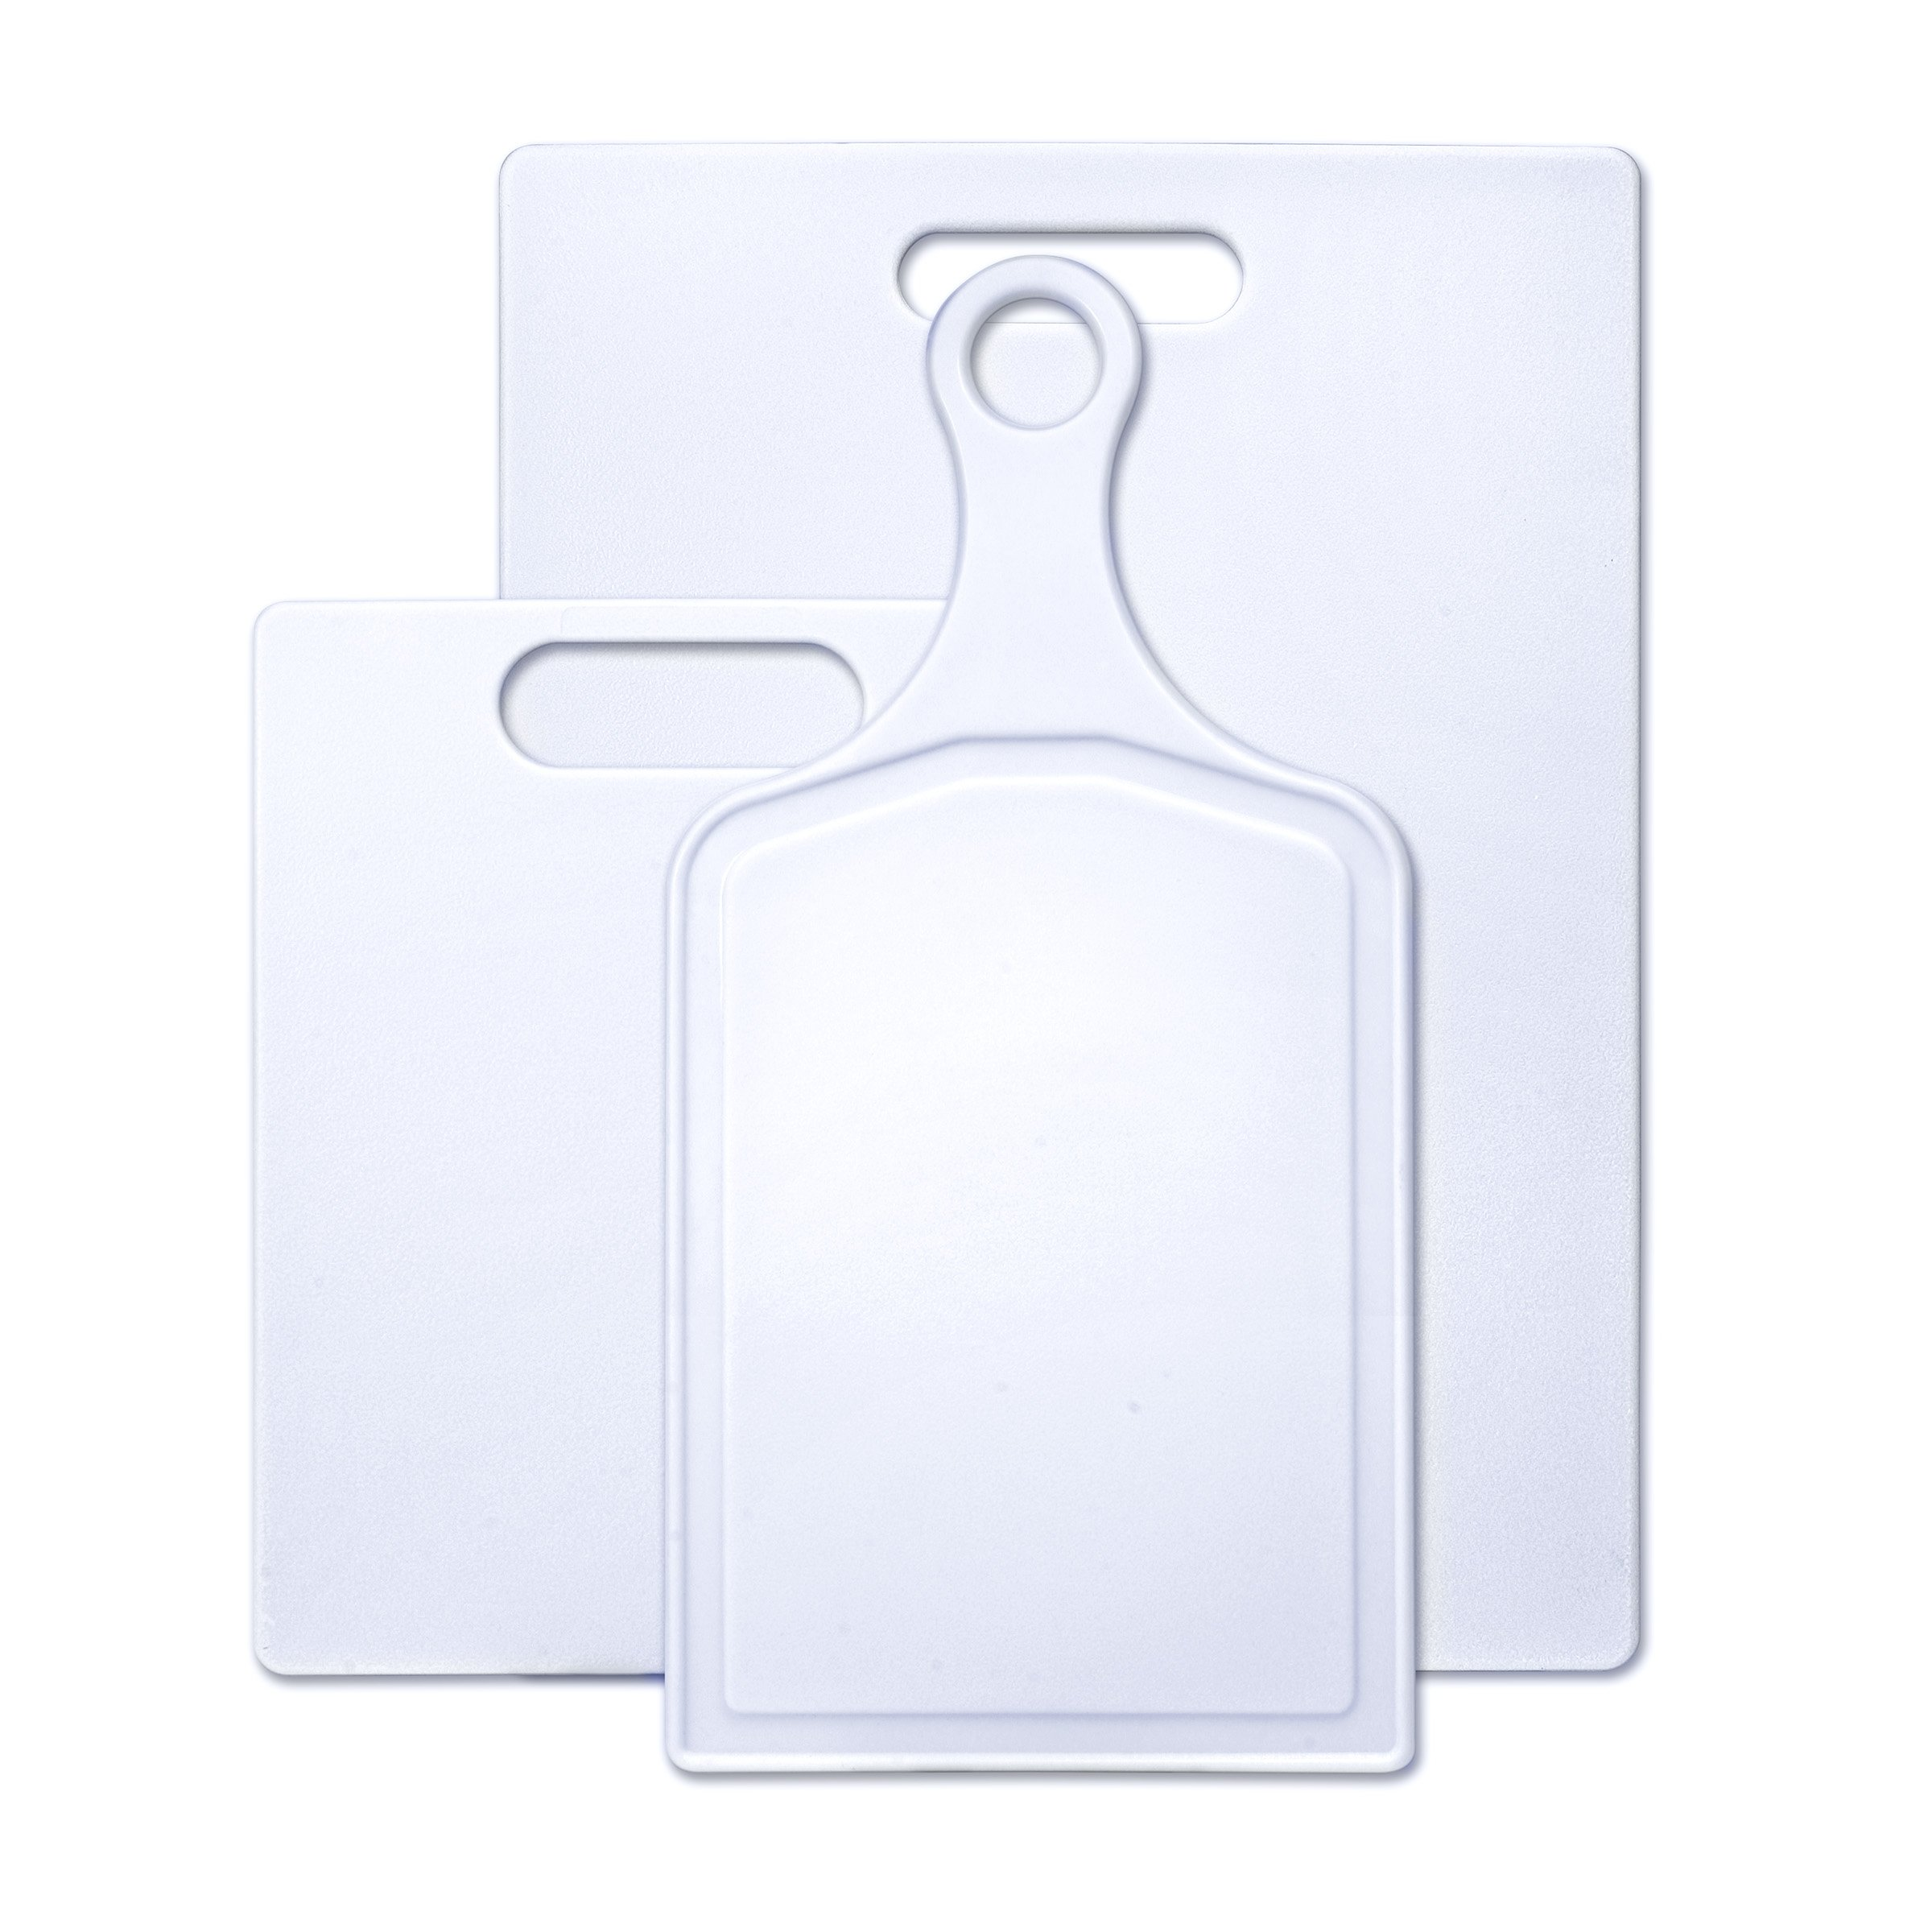 Farberware 3-Piece Plastic Cutting Board Set, Assorted Sizes by Farberware